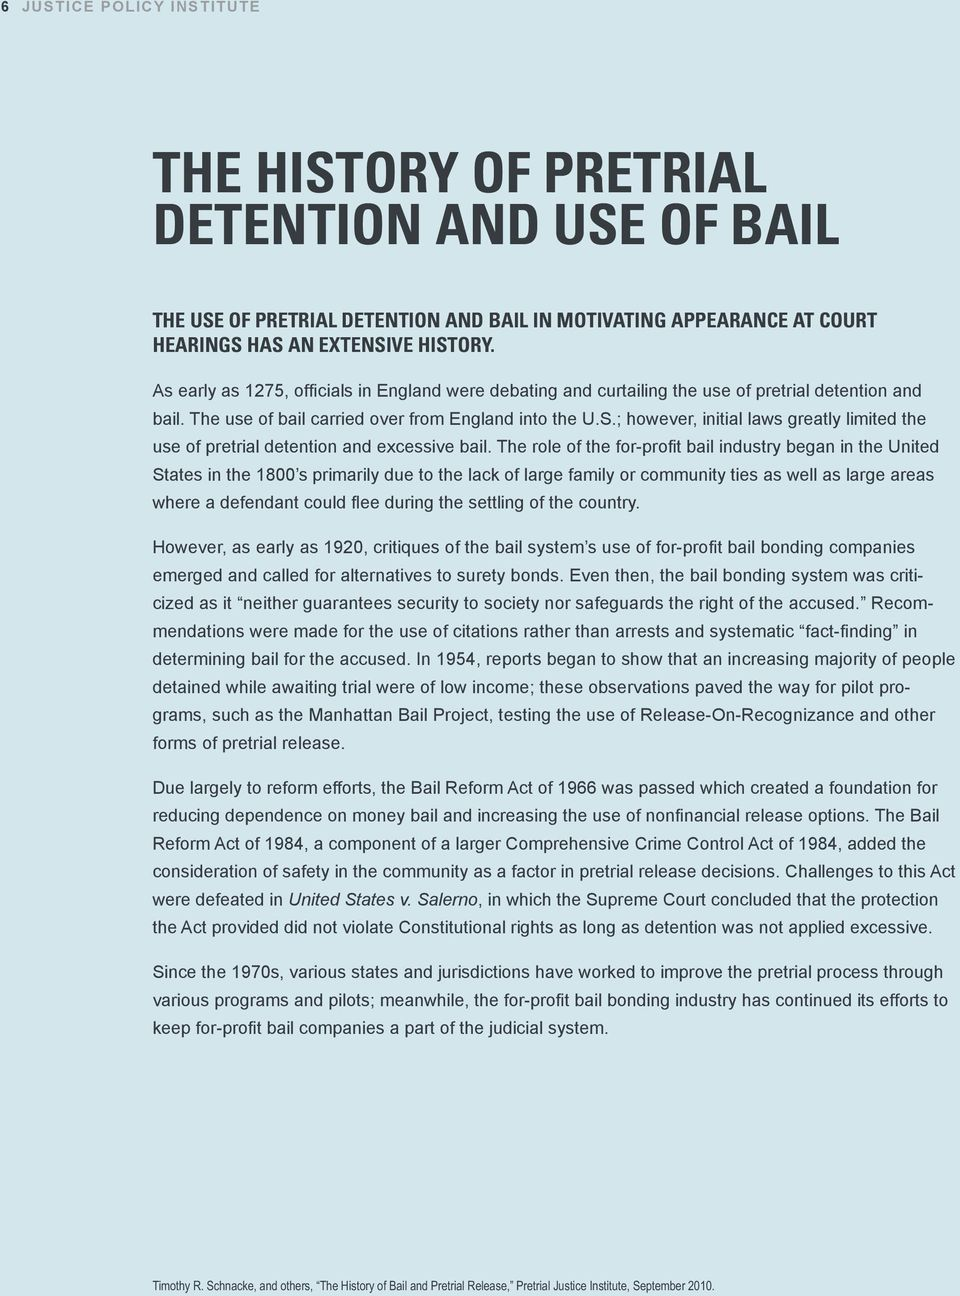 ; however, initial laws greatly limited the use of pretrial detention and excessive bail.